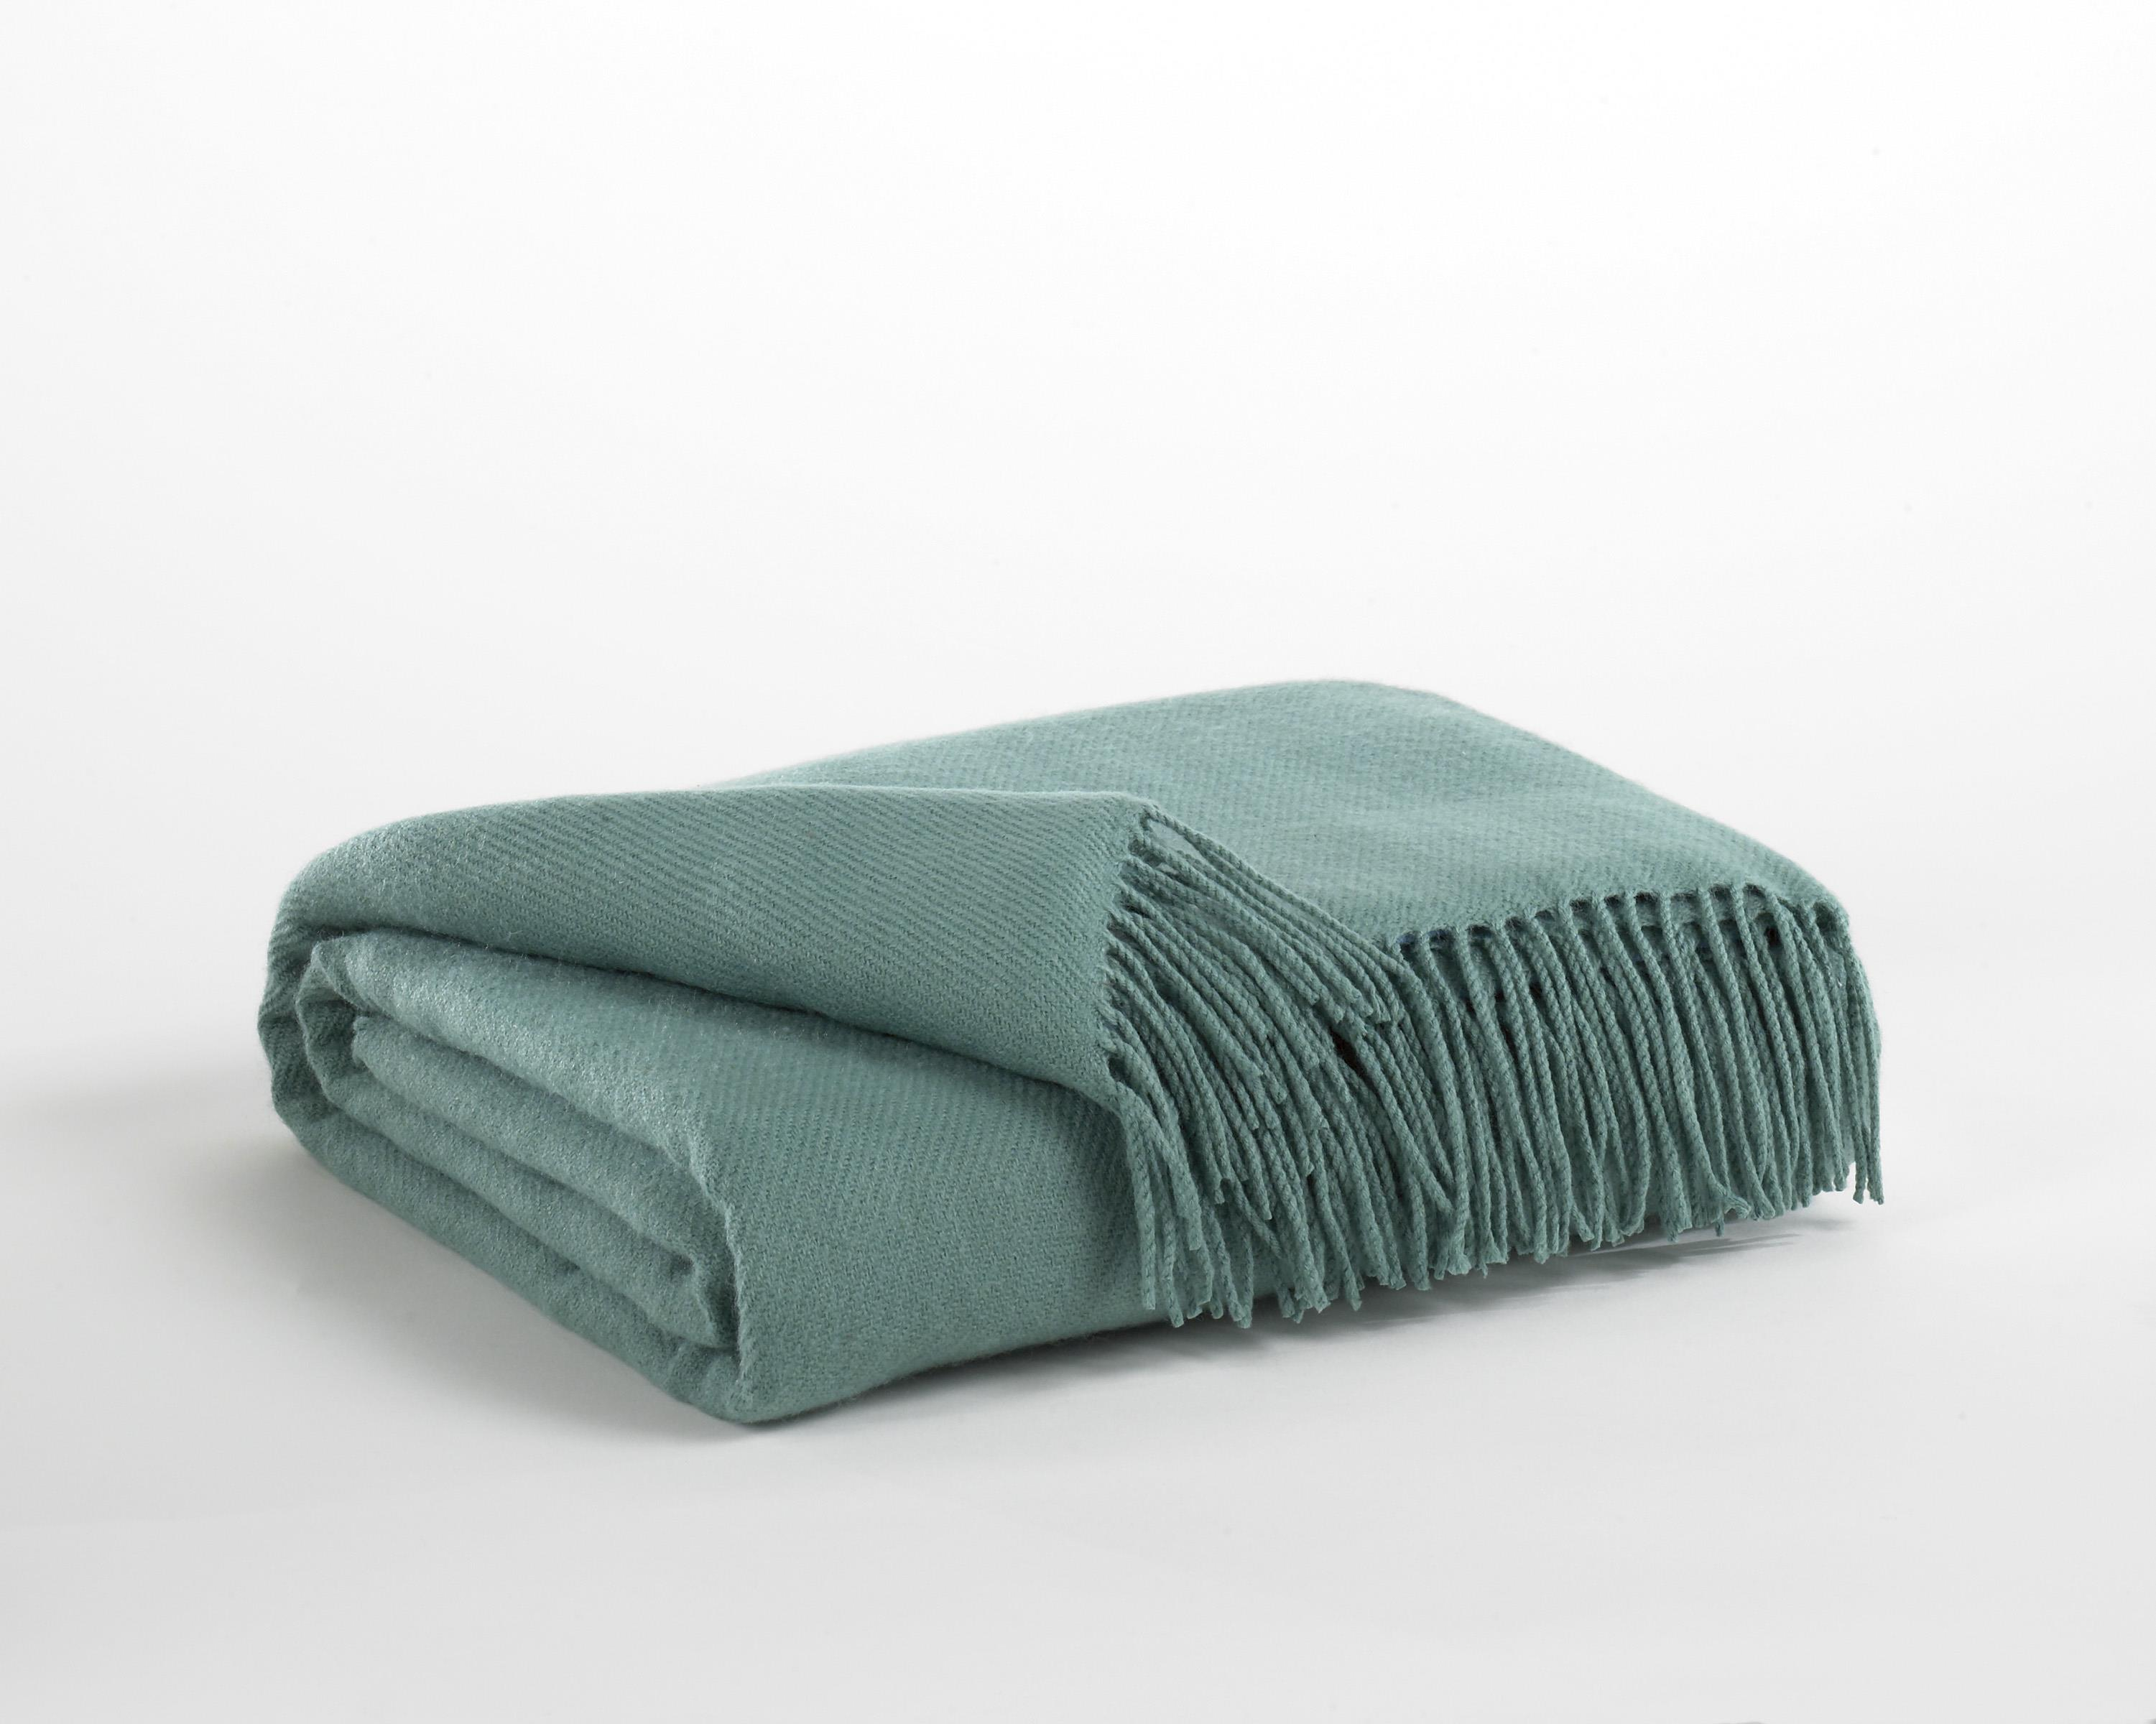 Signature Design by Ashley Throws Ashton - Aqua Throw - Item Number: A1000195T